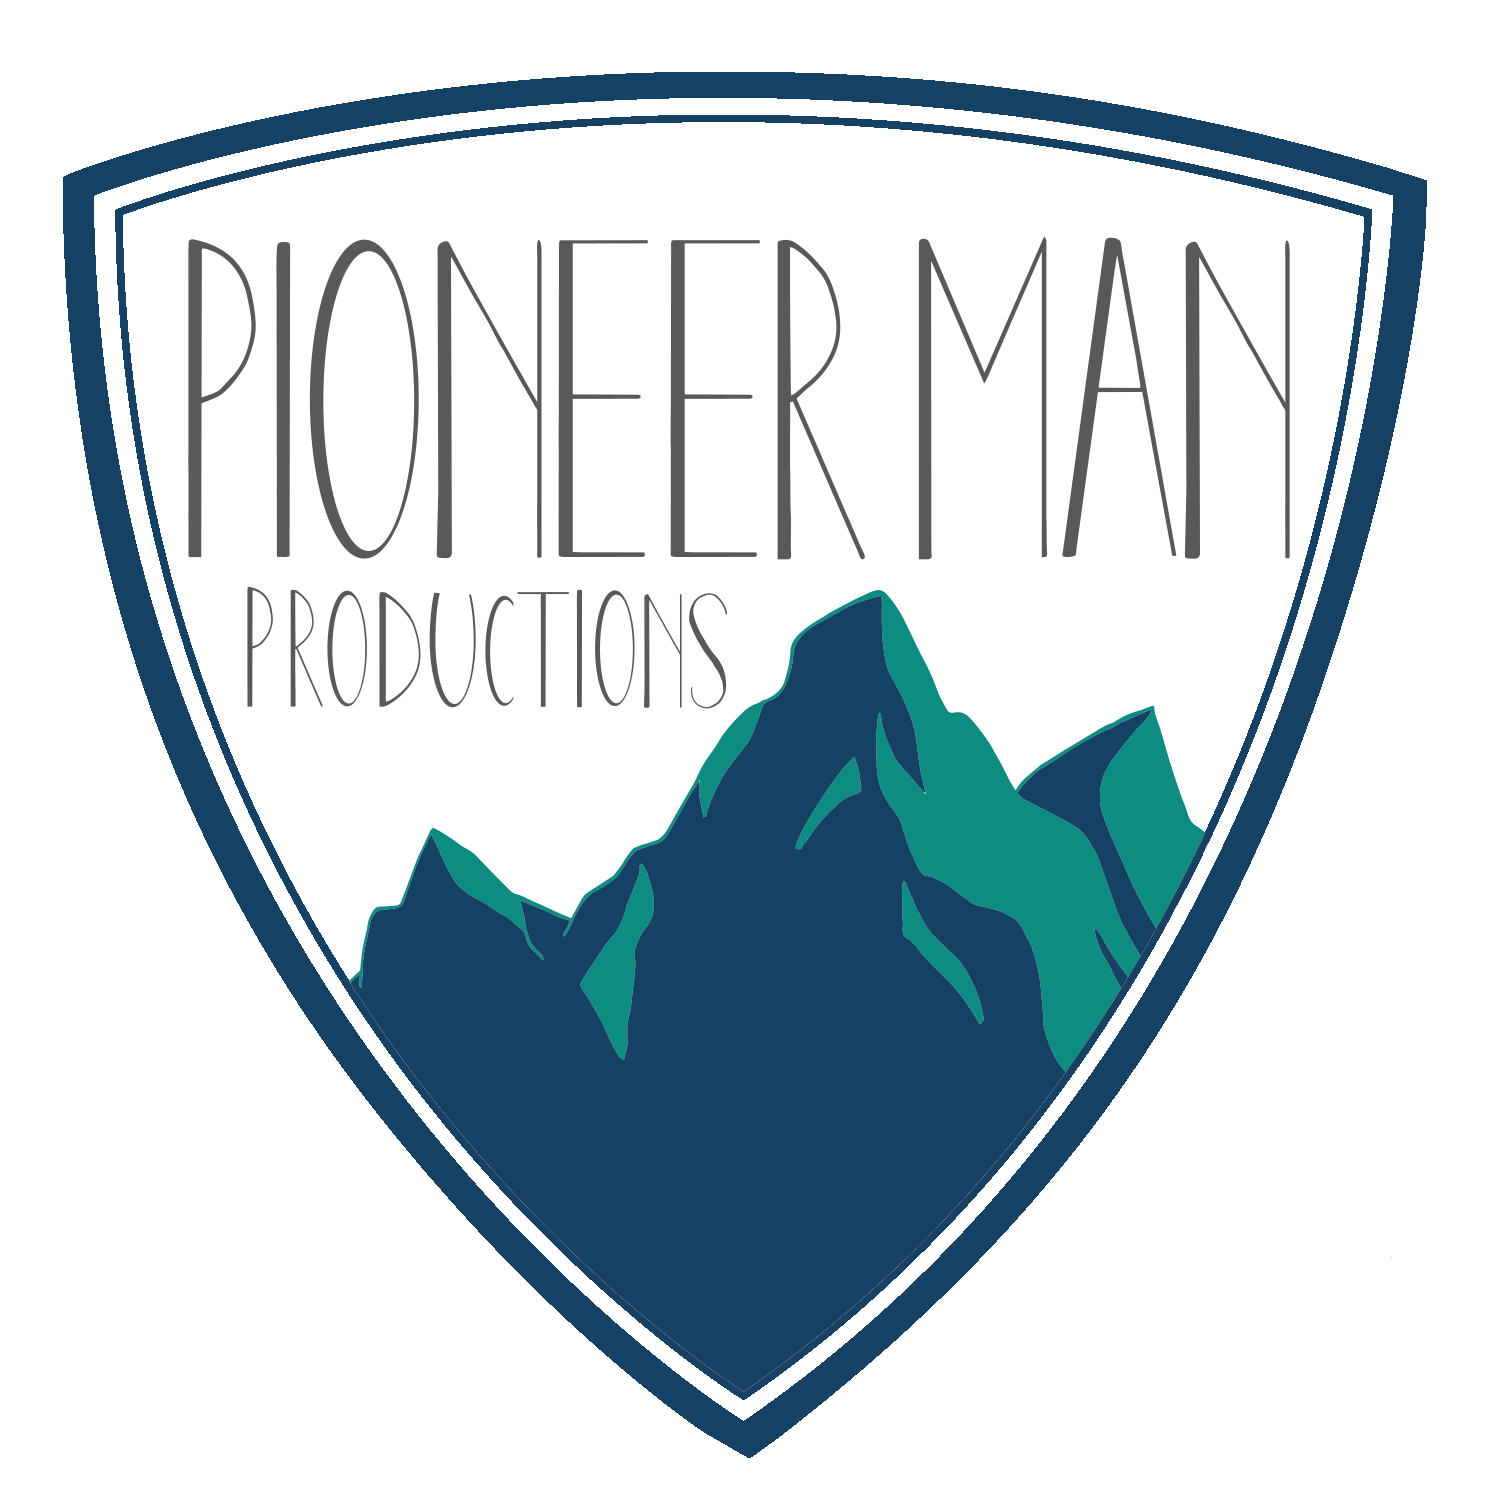 Pioneer Man Productions